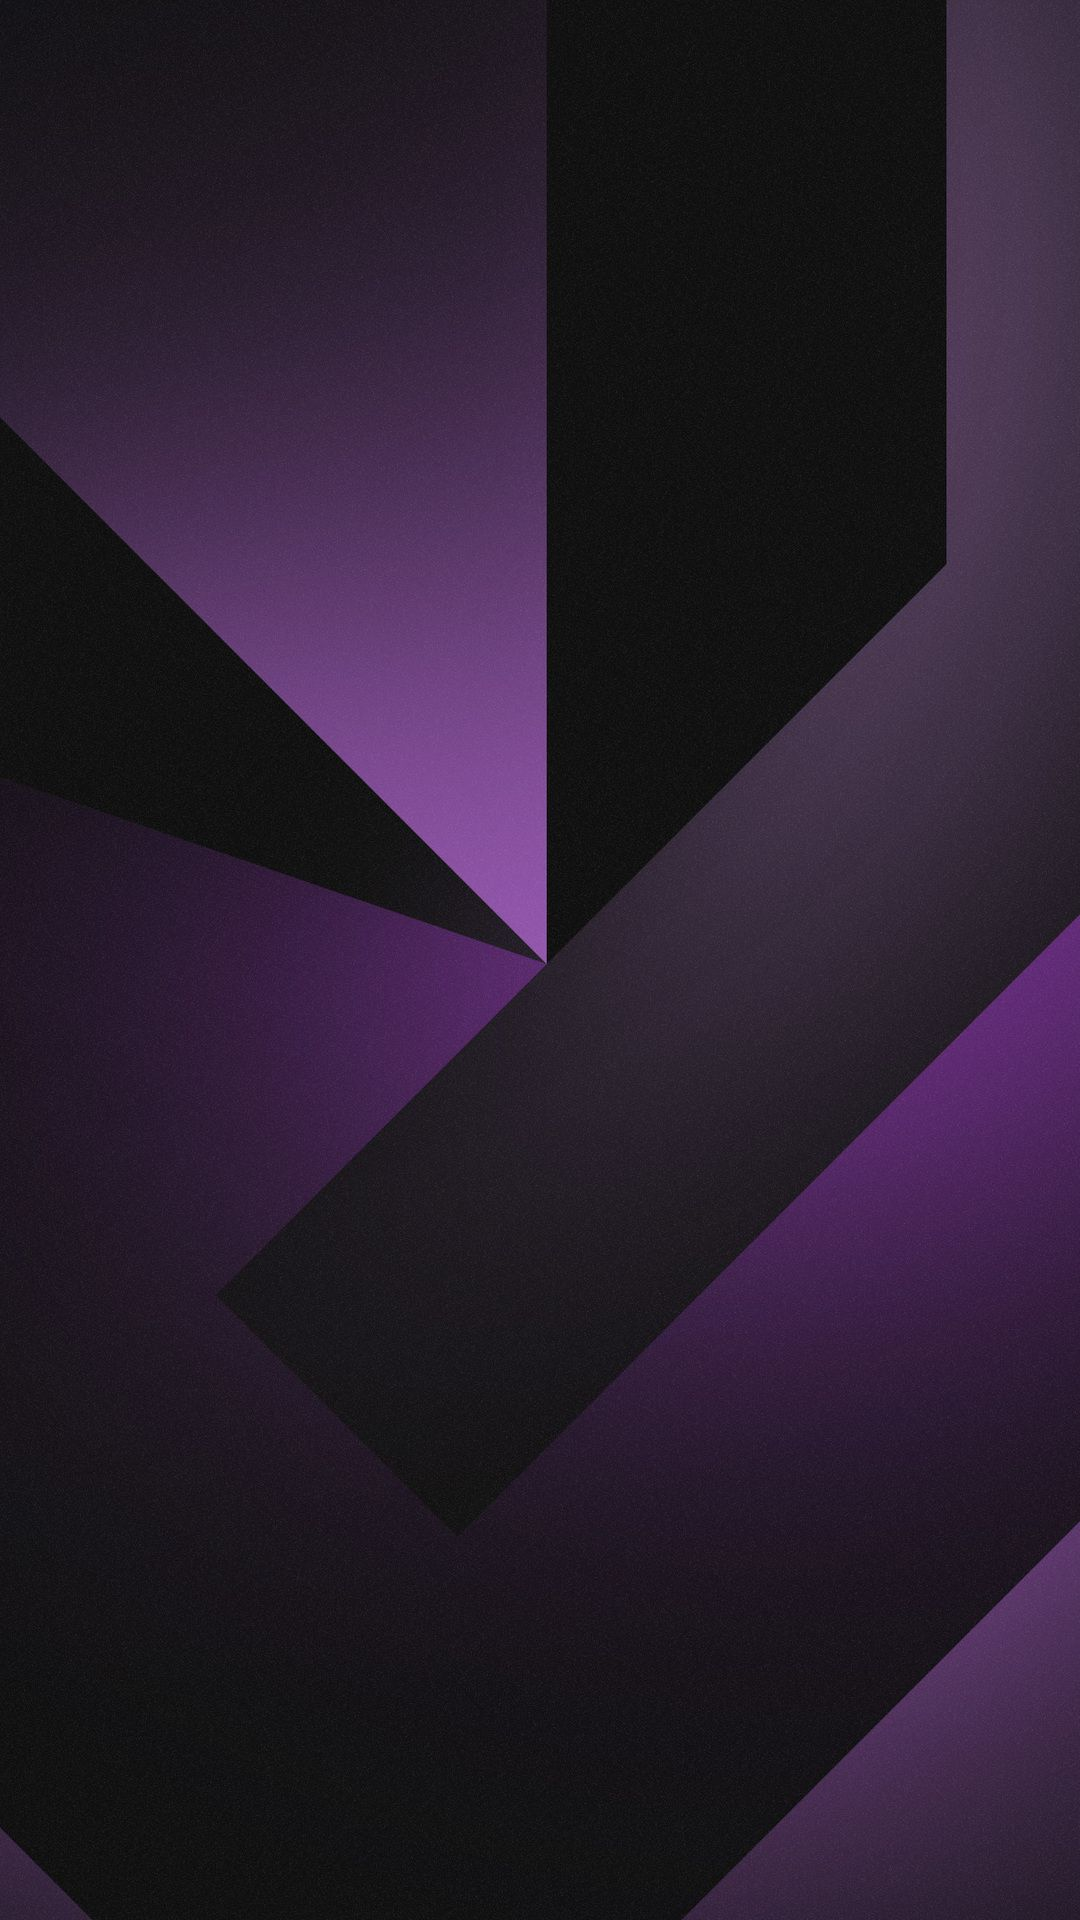 Abstract Dark Purple 4k In 1080x1920 Resolution